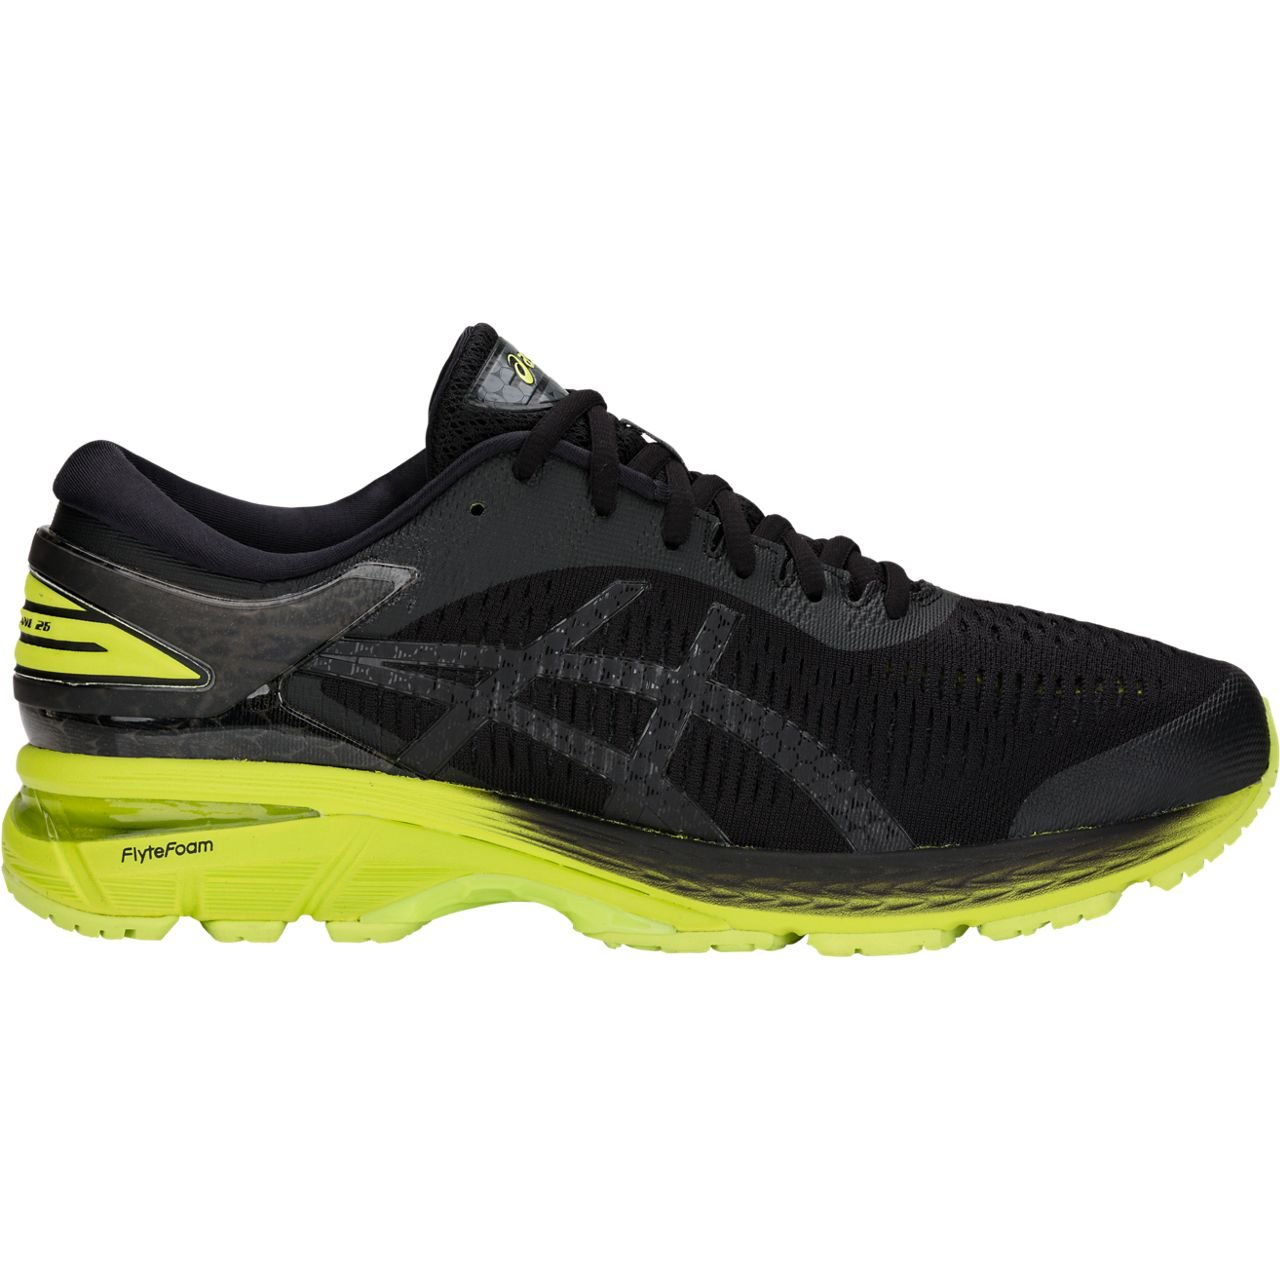 ASICS Gel-Kayano 25 Men's Running Shoe, Black/Neon Lime, 7 D(M) US by ASICS (Image #1)